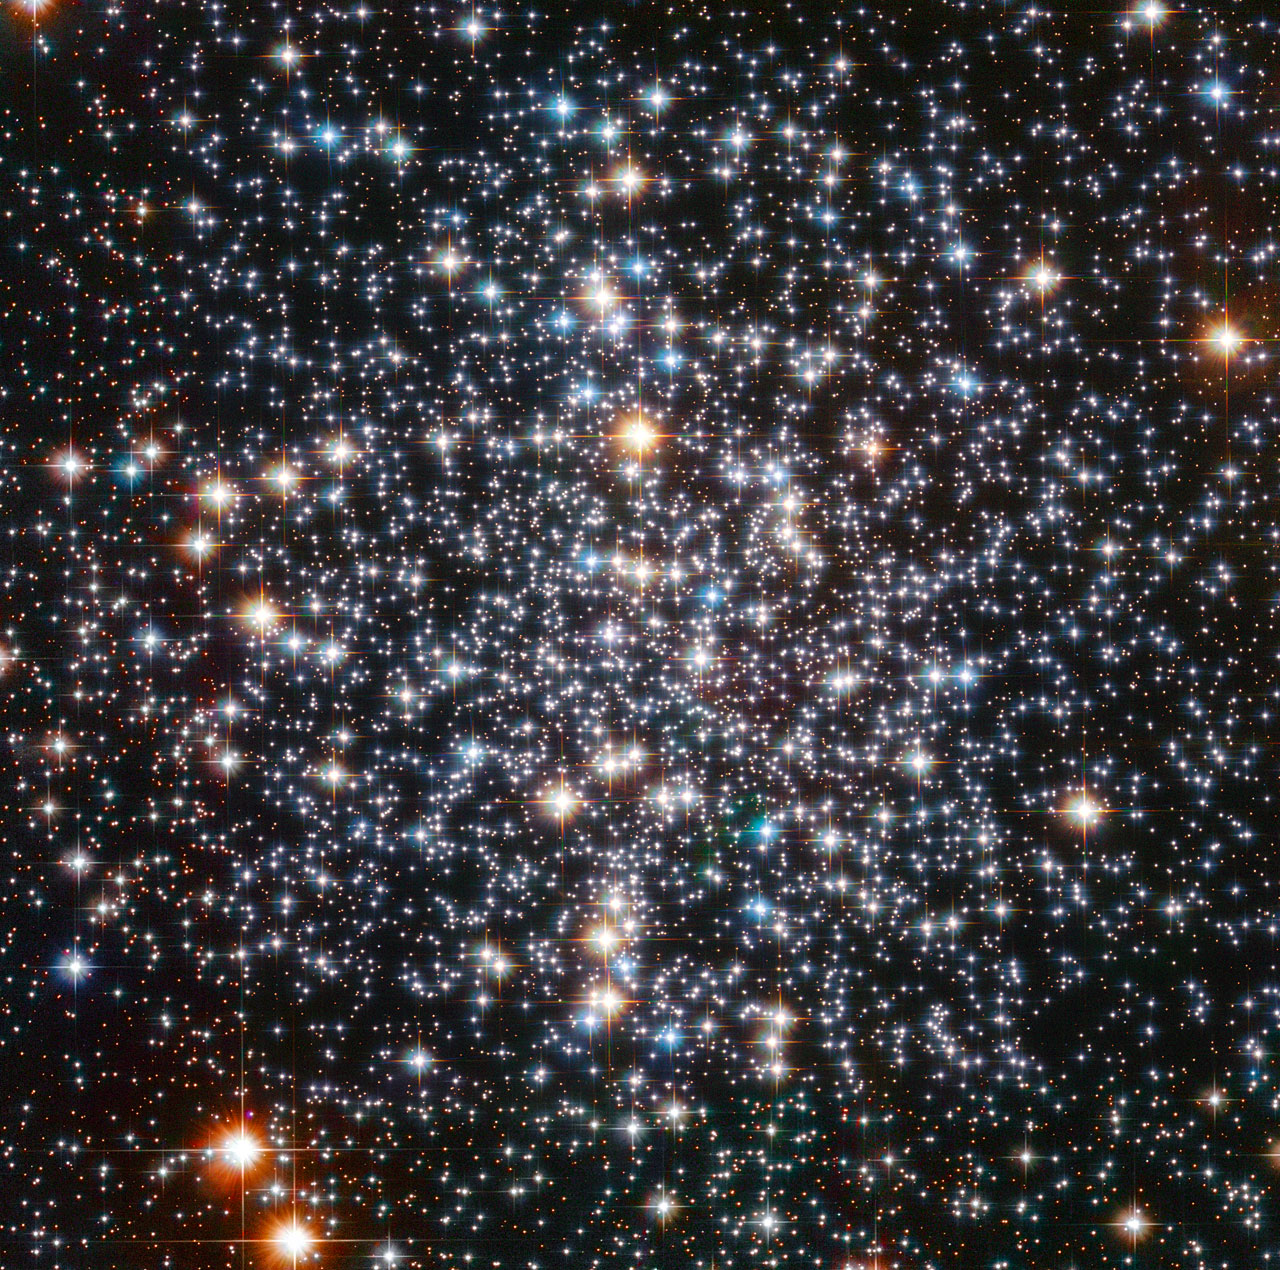 Hubble Telescope Captures Blazing Heart of Huge Star Cluster